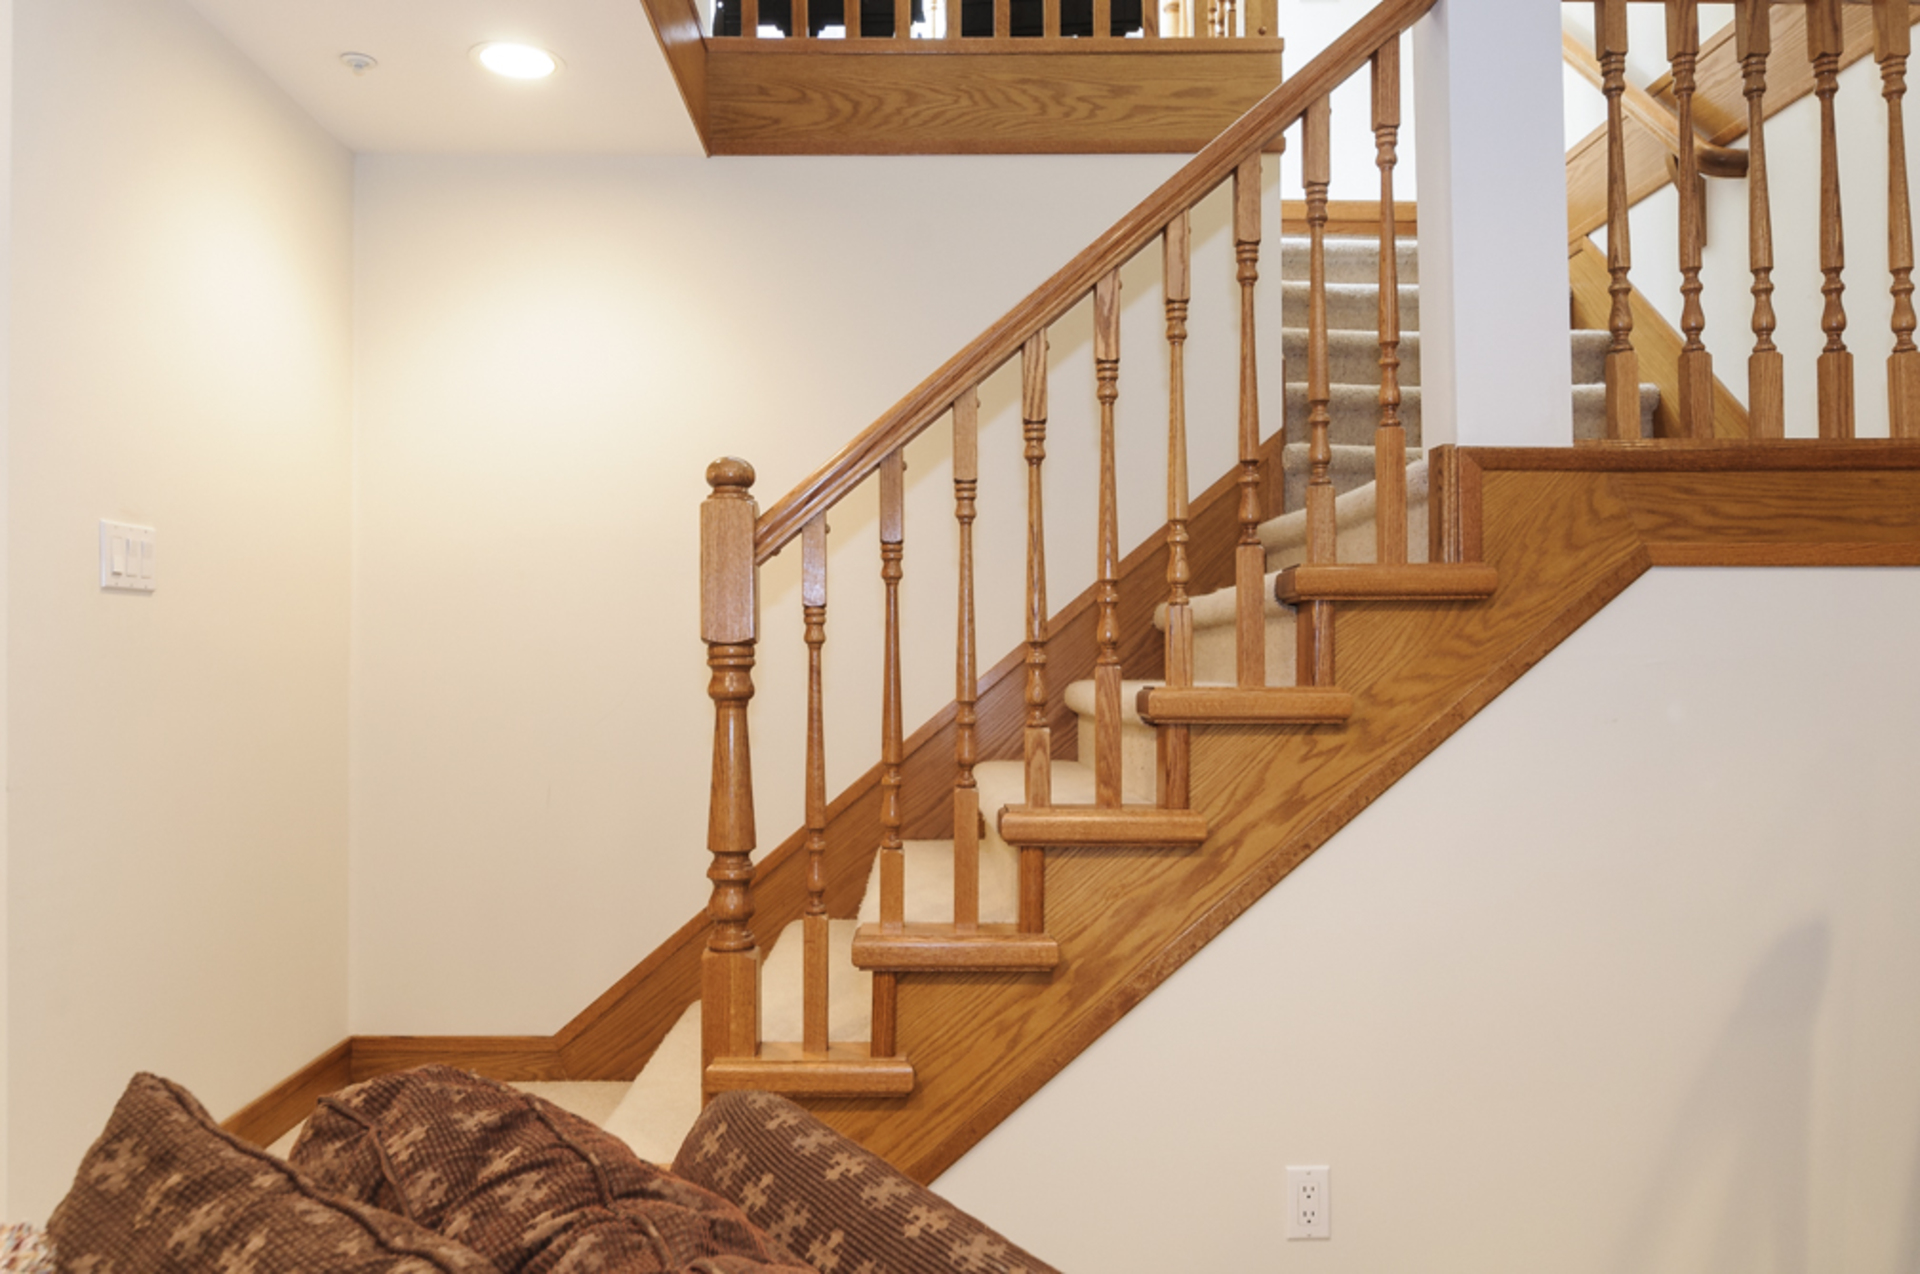 Gorgeous wooden bannister railings throughout the home at 1178 West 42nd Avenue, South Granville, Vancouver West